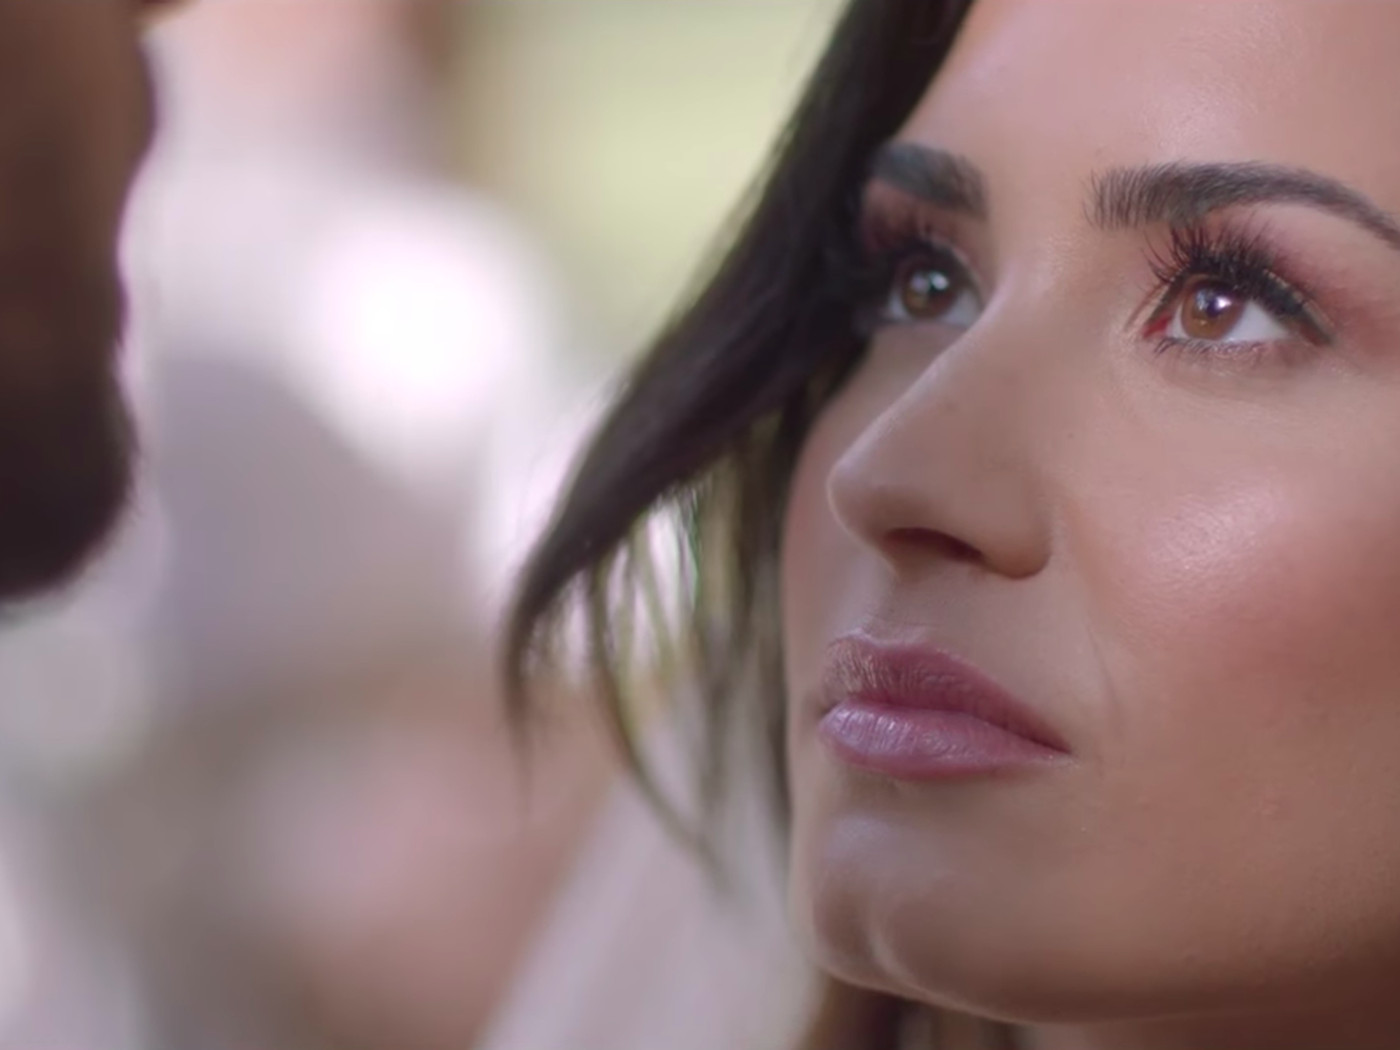 demi lovato tell me you love me download now